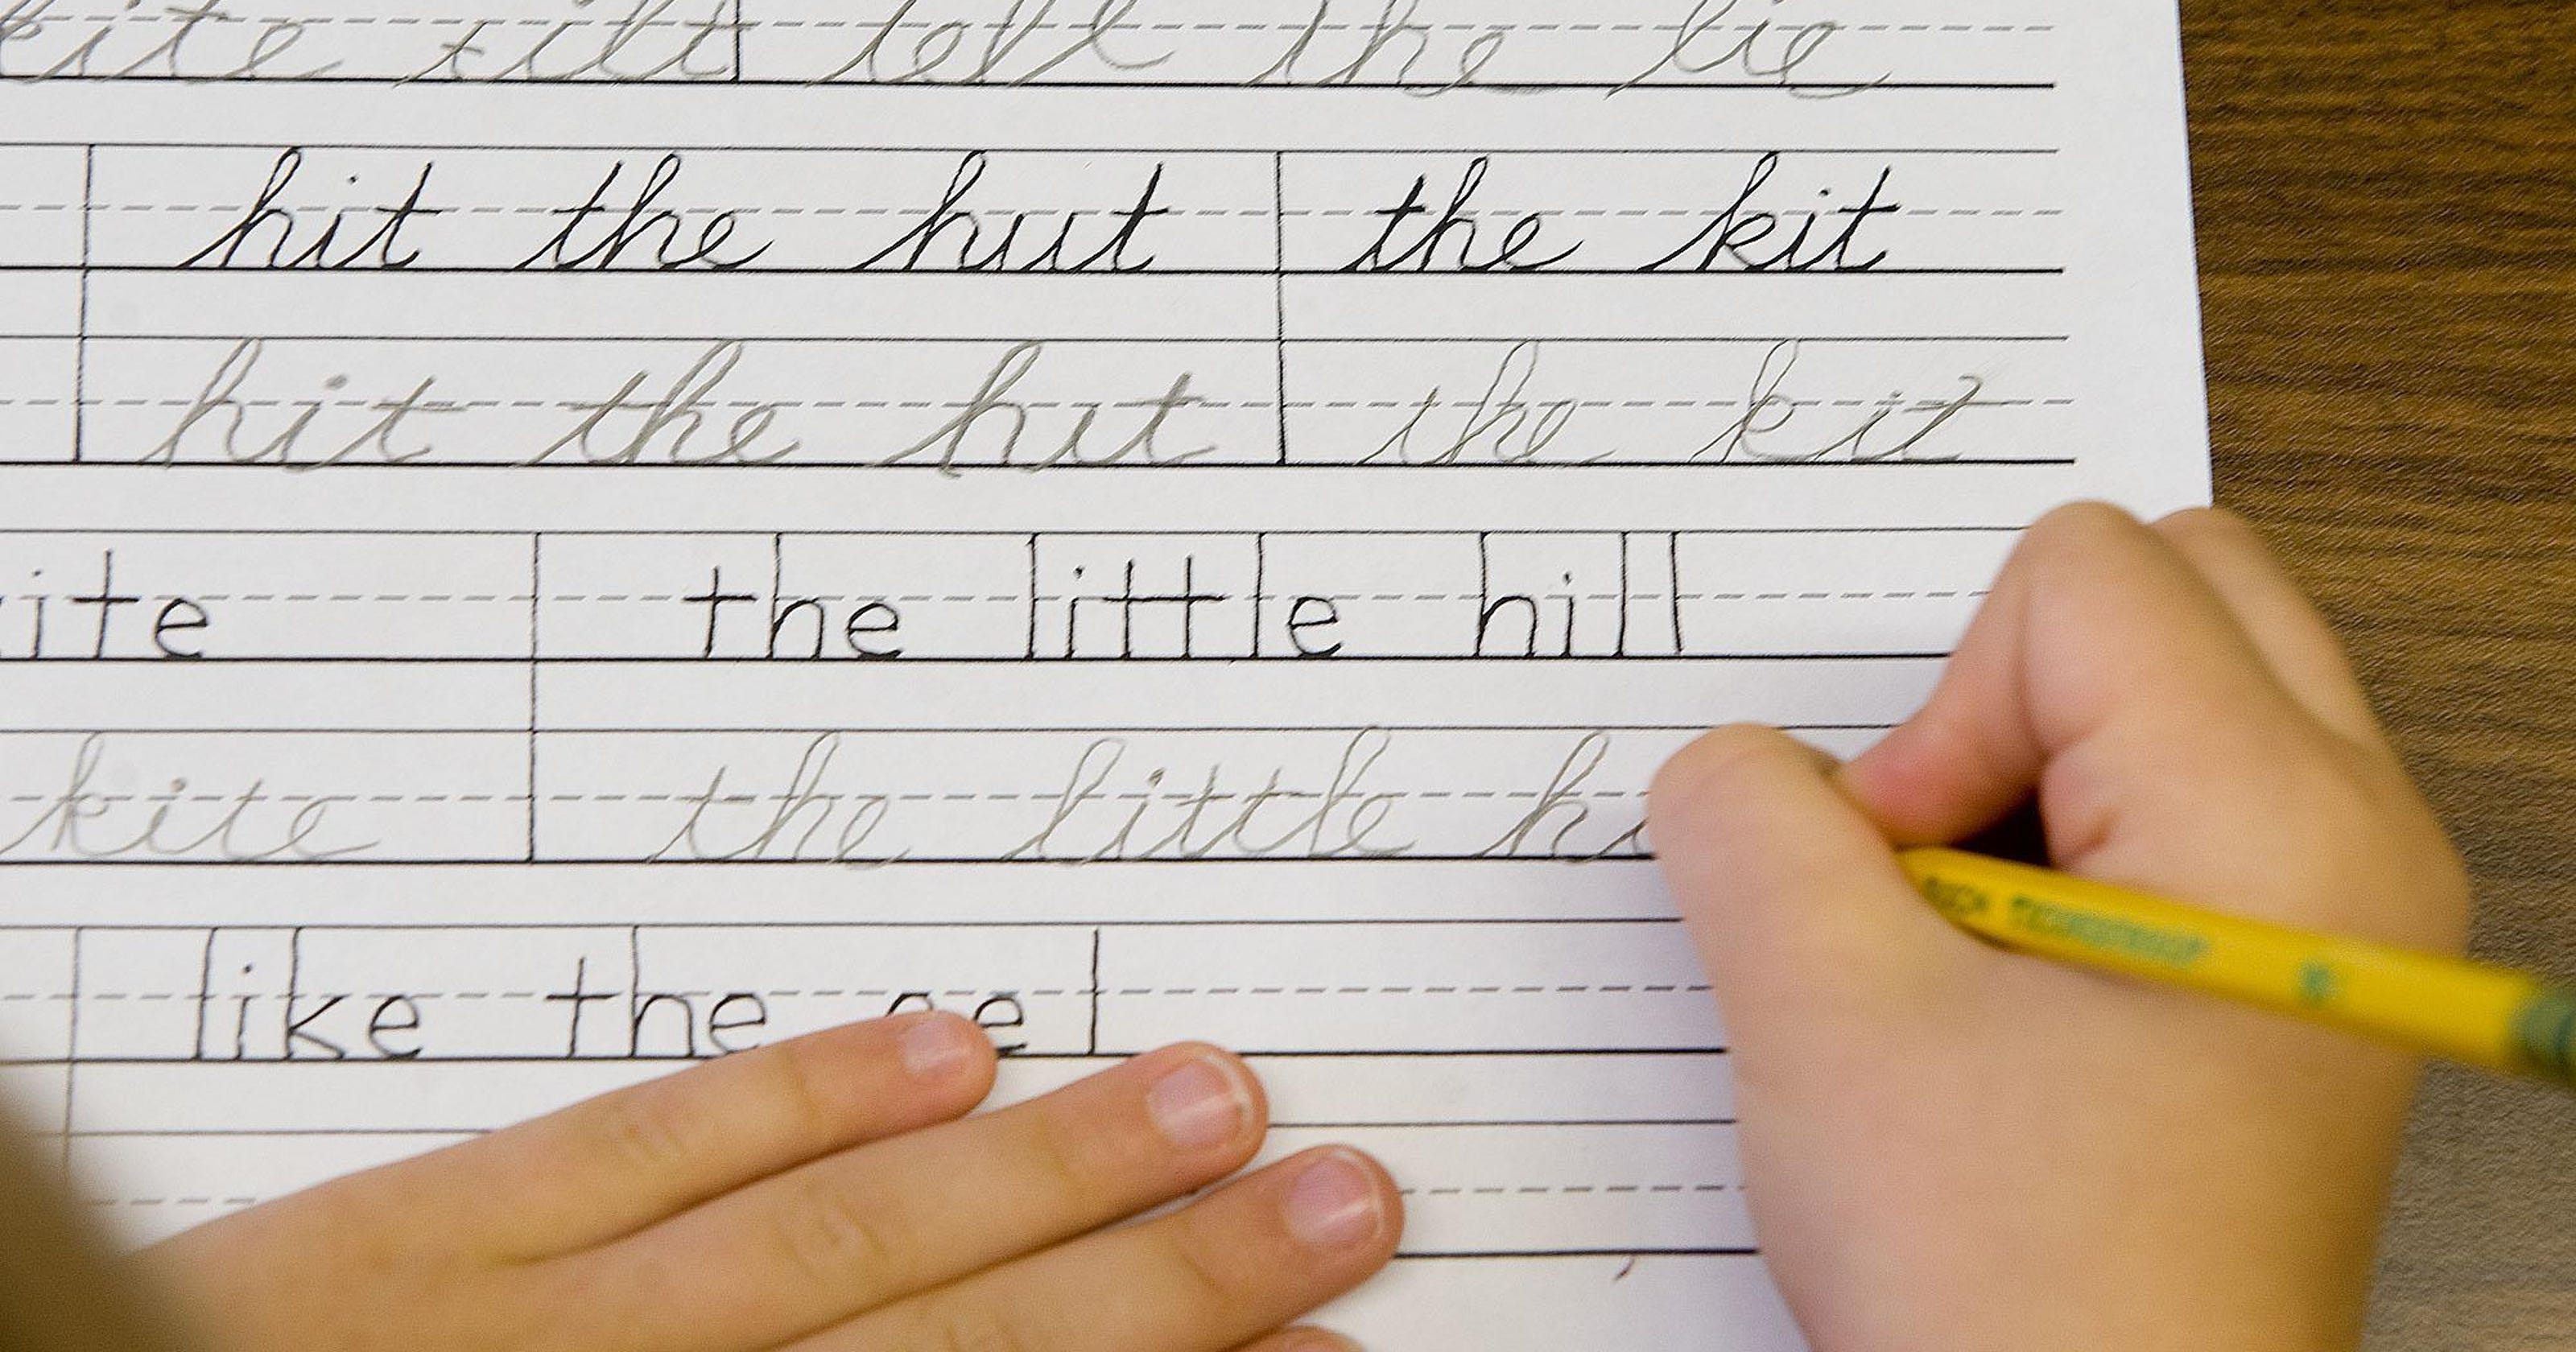 Ohio students could learn cursive writing again